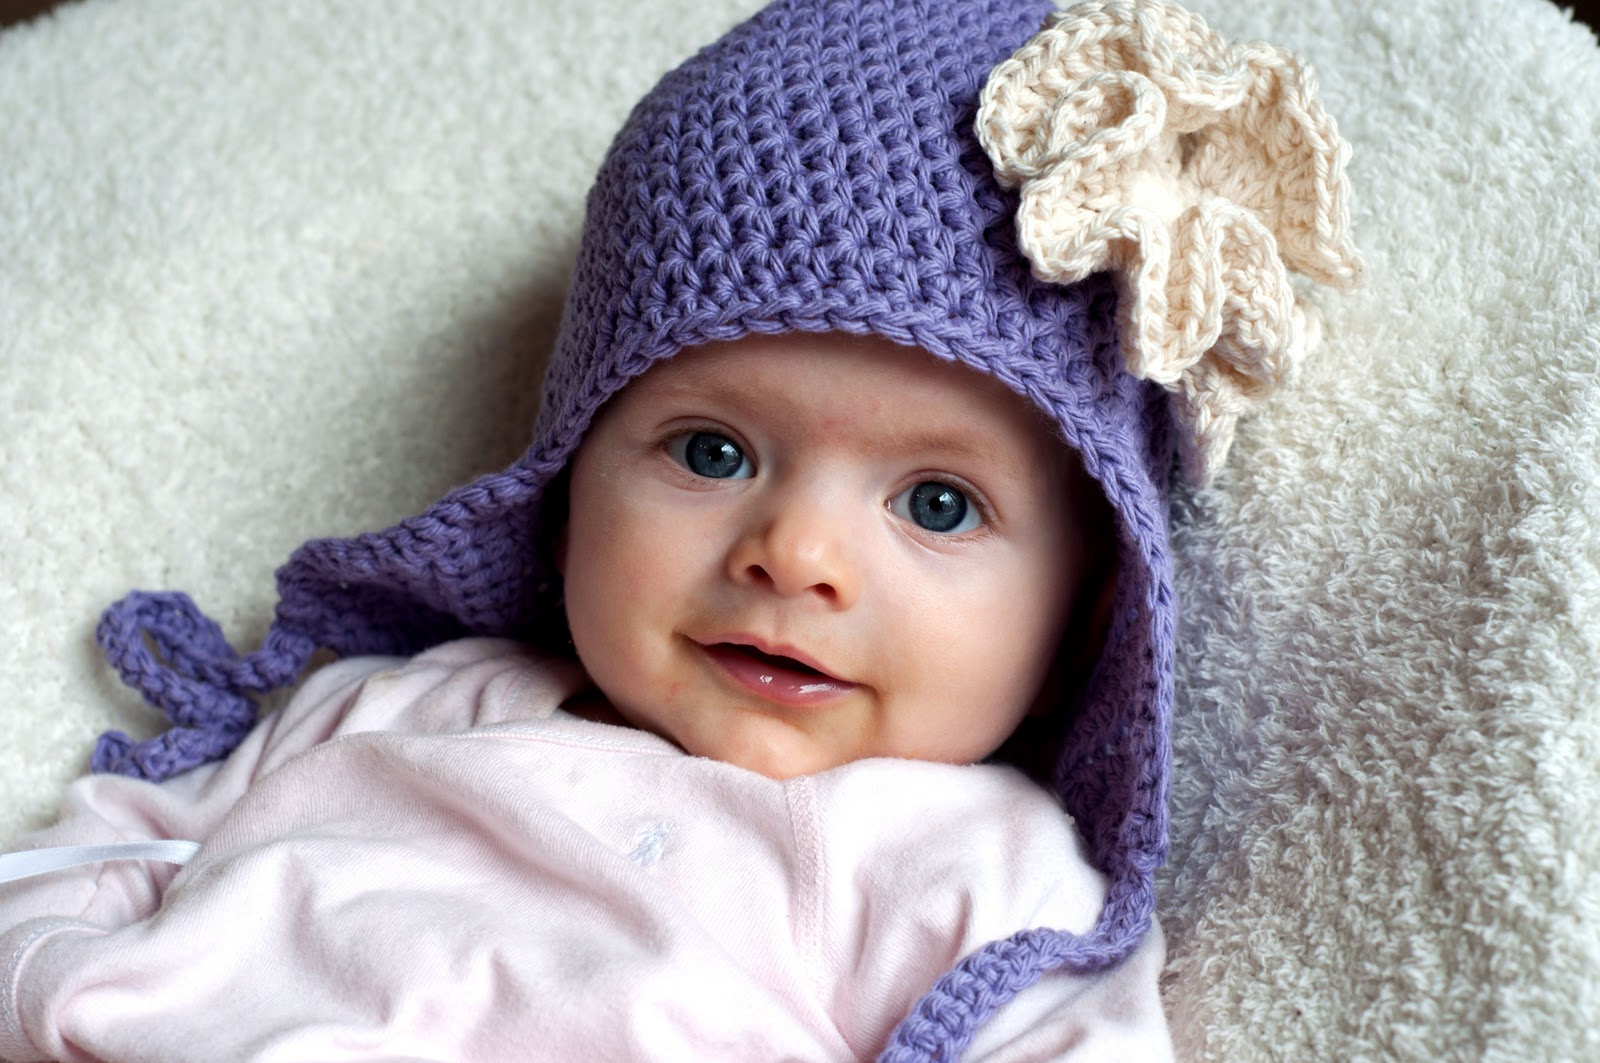 Crochet Patterns For Baby Hats And Booties : Aesthetic Nest: Crochet: Ruffled Rose Earflap Hat for Baby ...